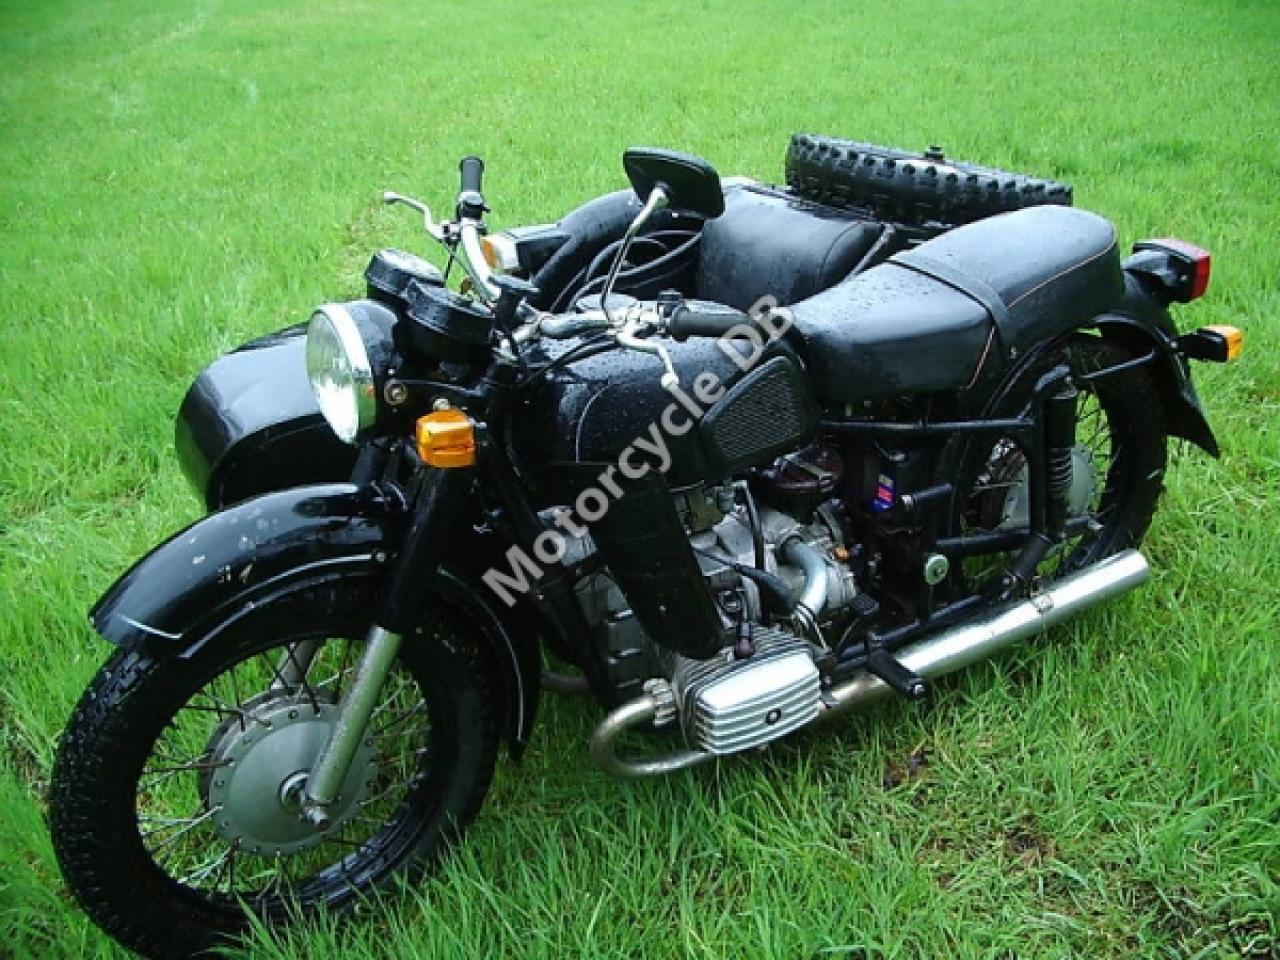 Dnepr MT 10 with sidecar 1985 images #72069